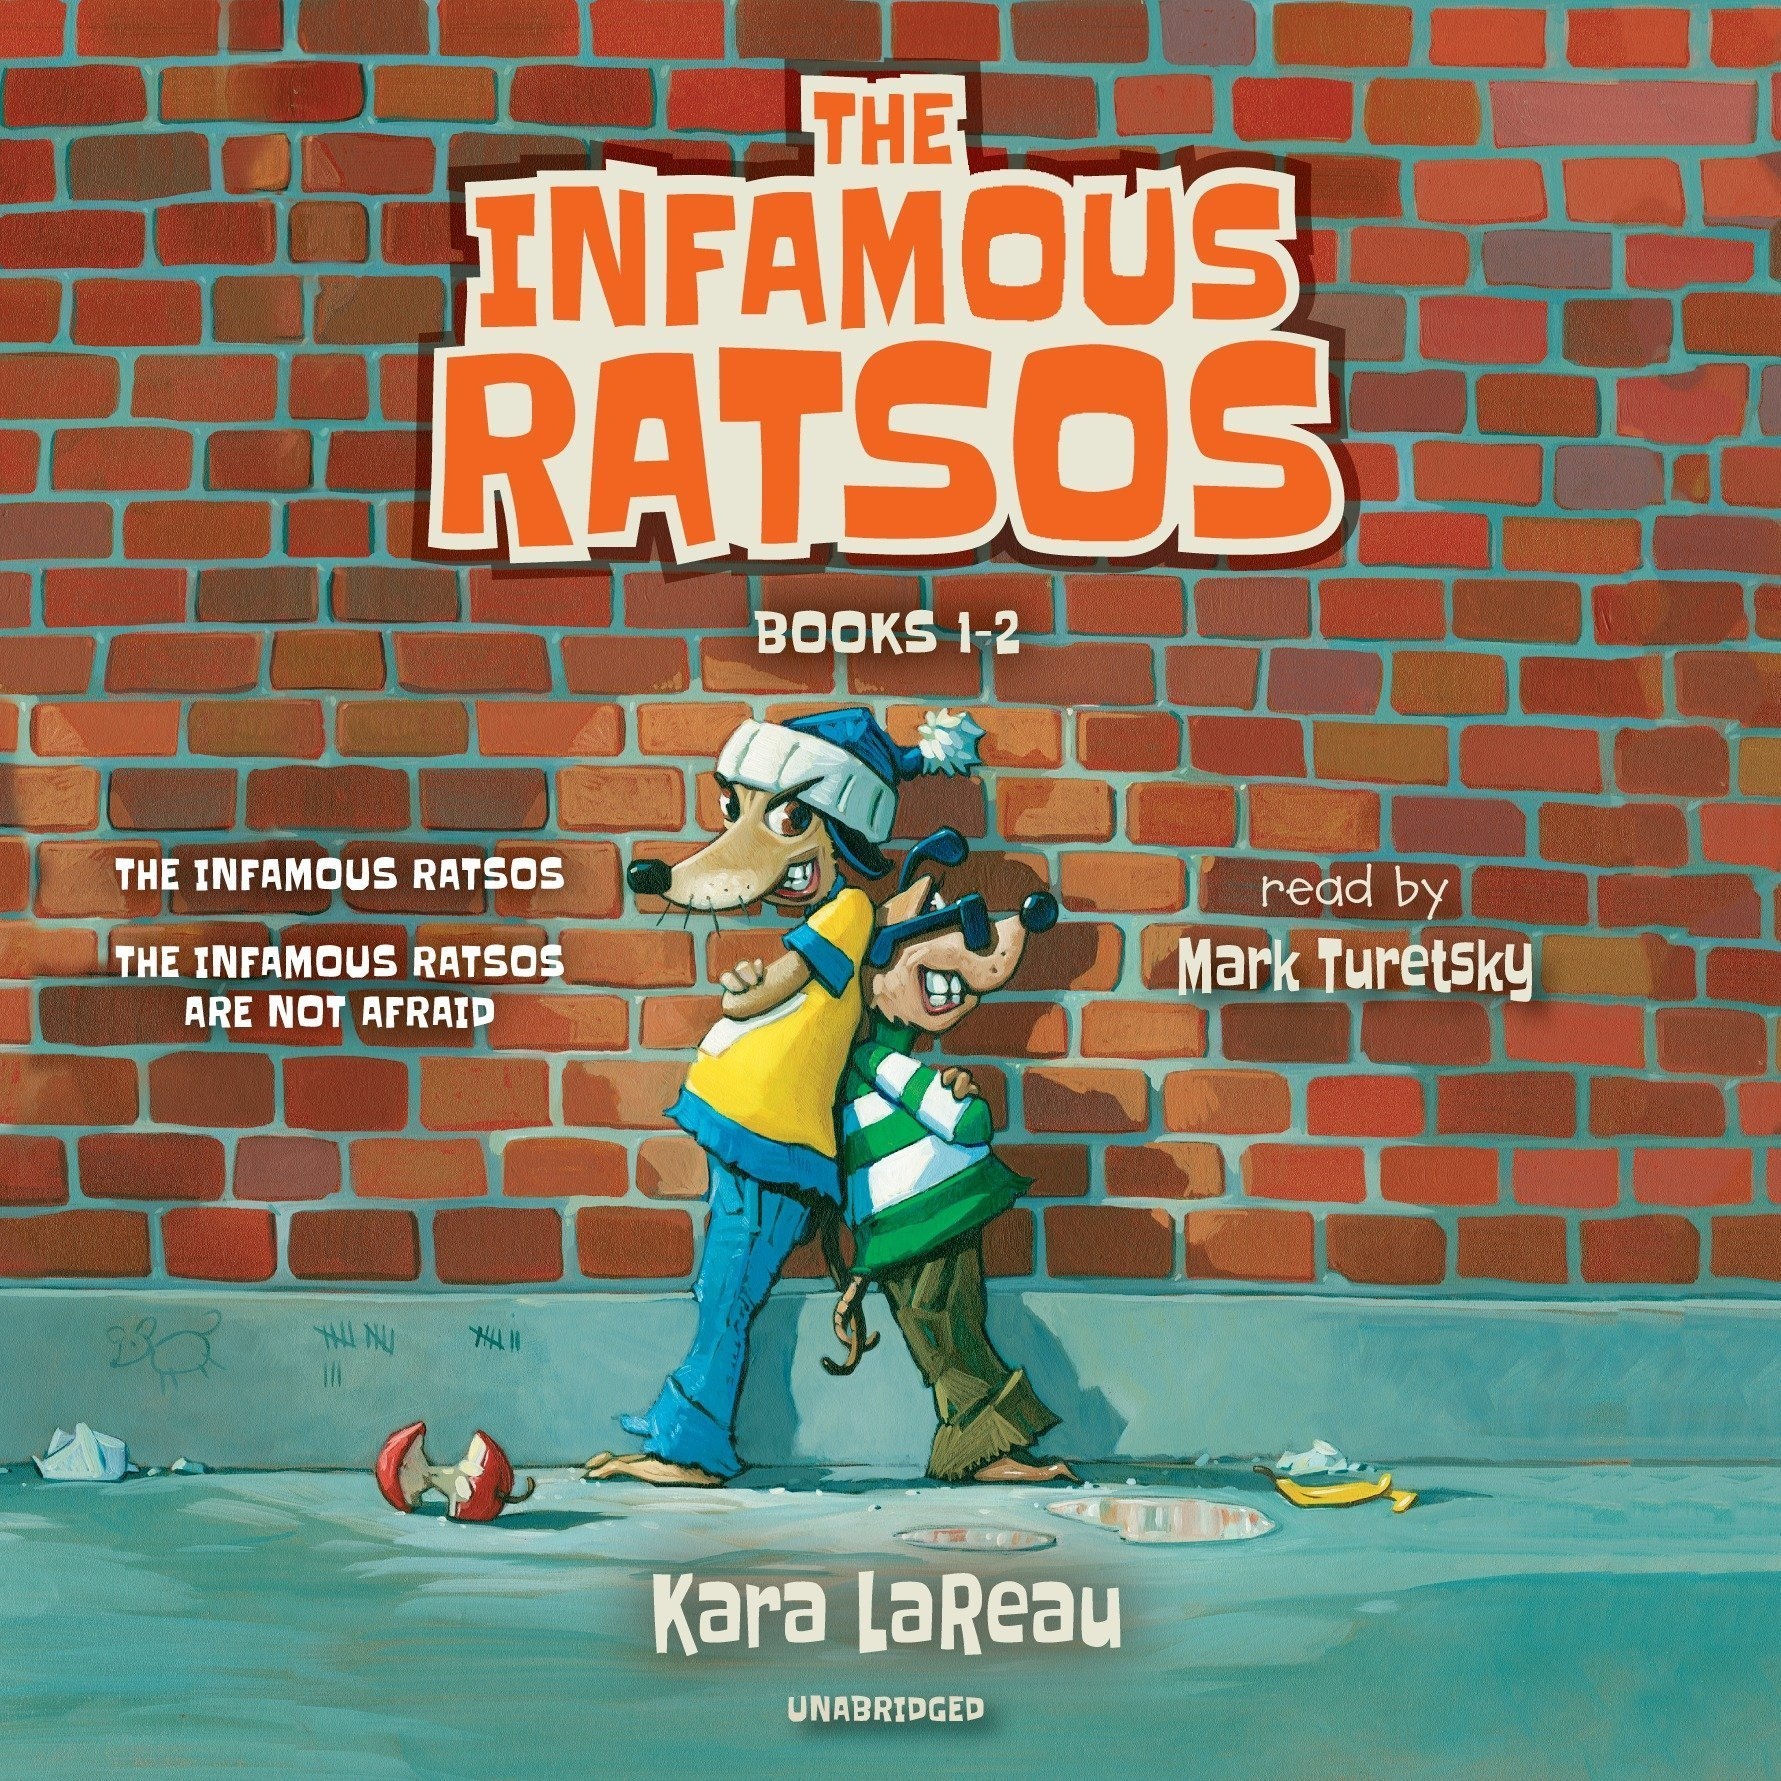 Printable The Infamous Ratsos: Books 1-2: The Infamous Ratsos; The Infamous Ratsos Are Not Afraid Audiobook Cover Art